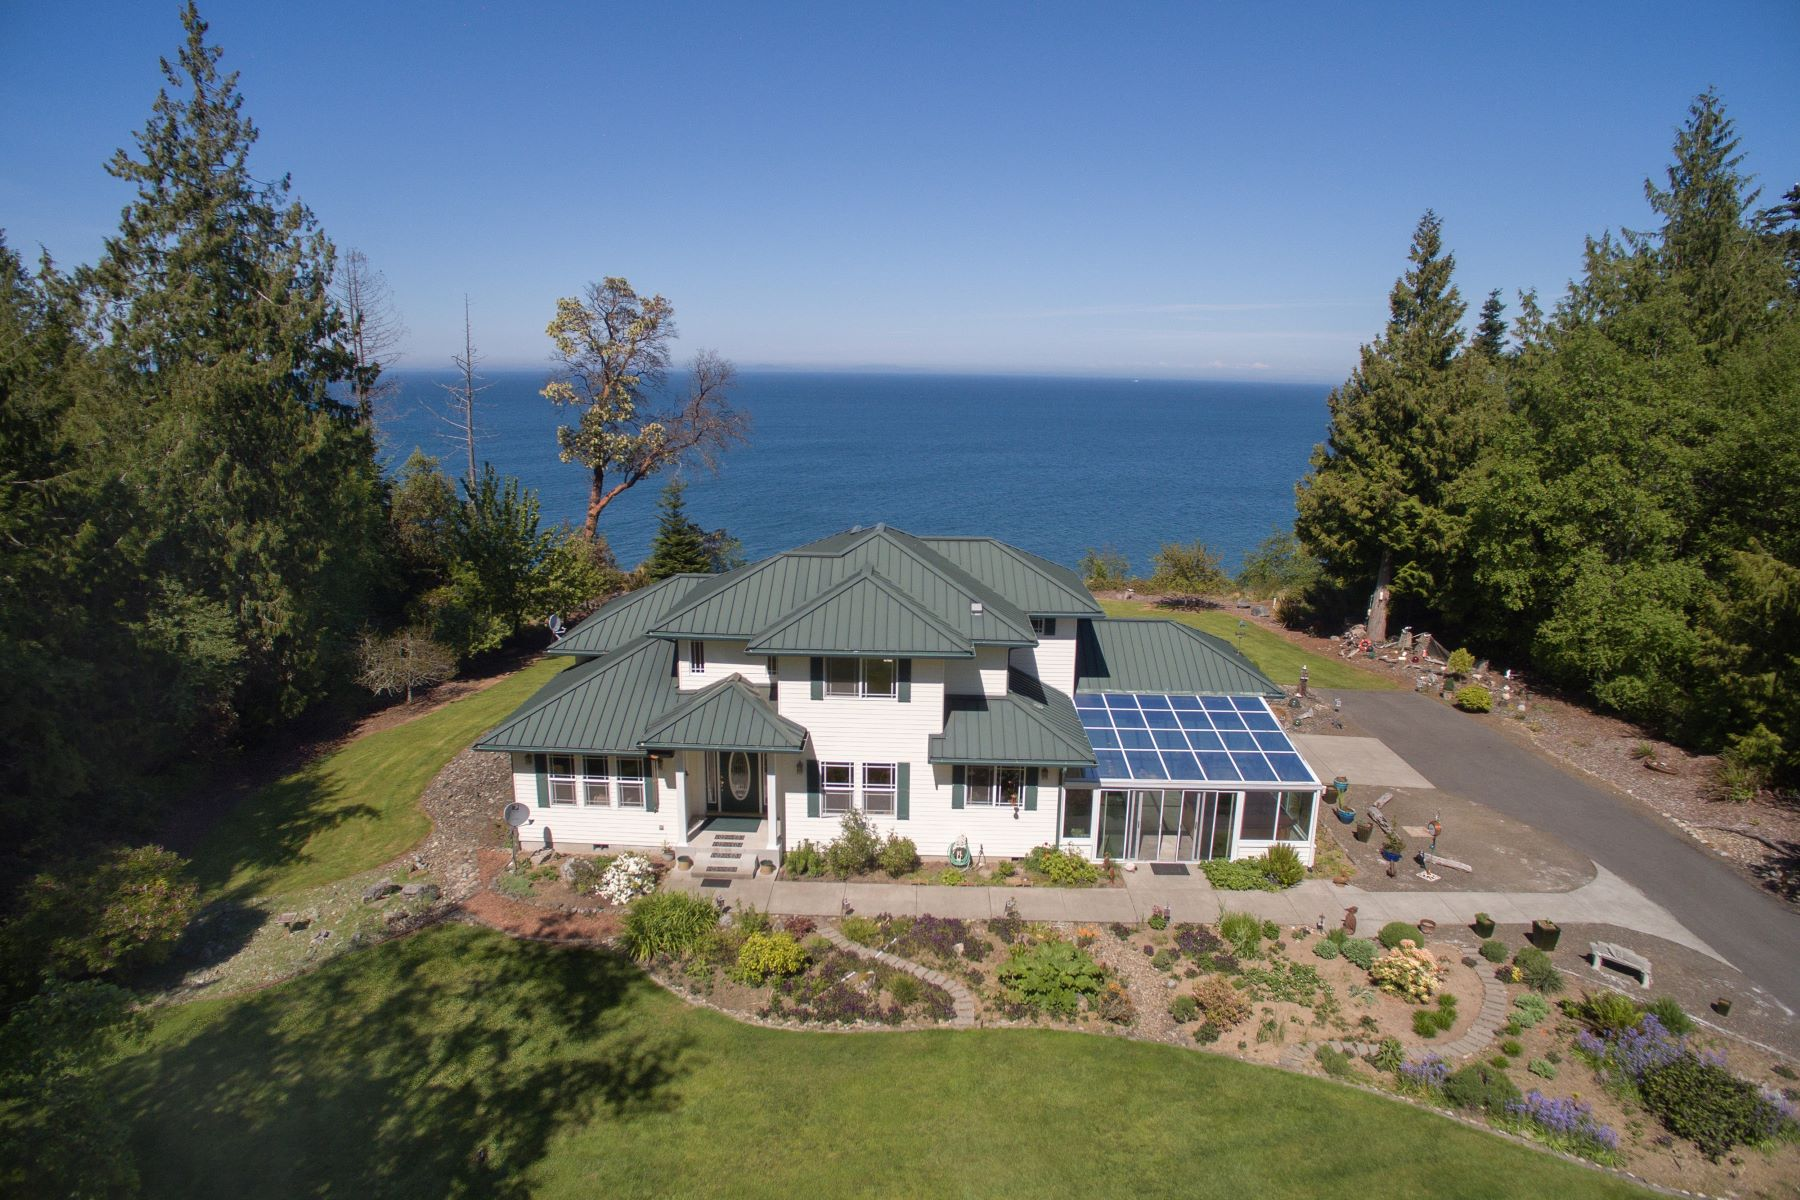 Single Family Home for Sale at Port Angeles Waterfront Home on 5 Acres 113 S Breakerpoint Place Port Angeles, Washington 98363 United States